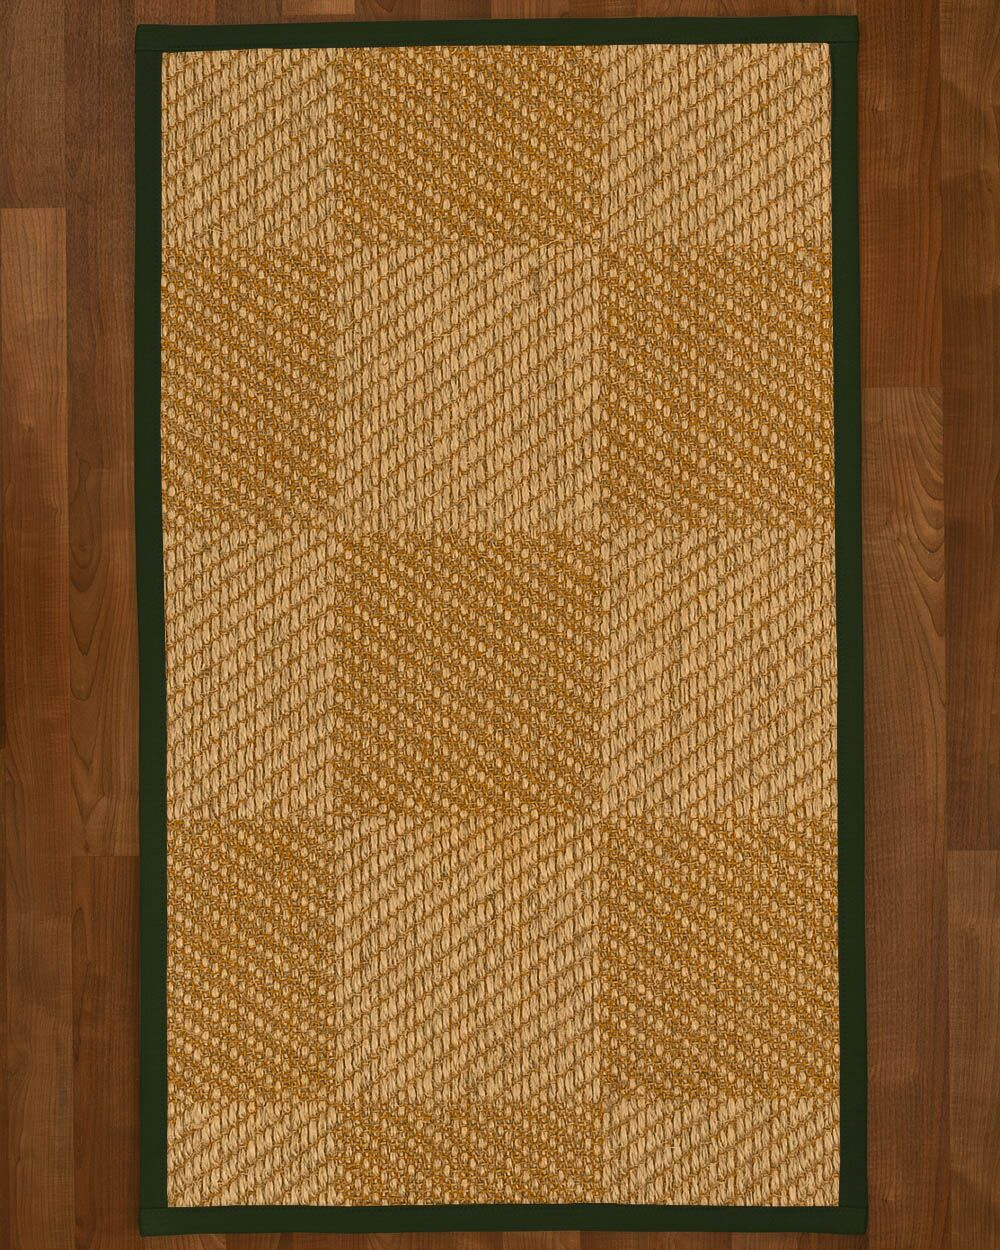 Adley Hand-Woven Beige Area Rug Rug Size: Rectangle 12' x 15'